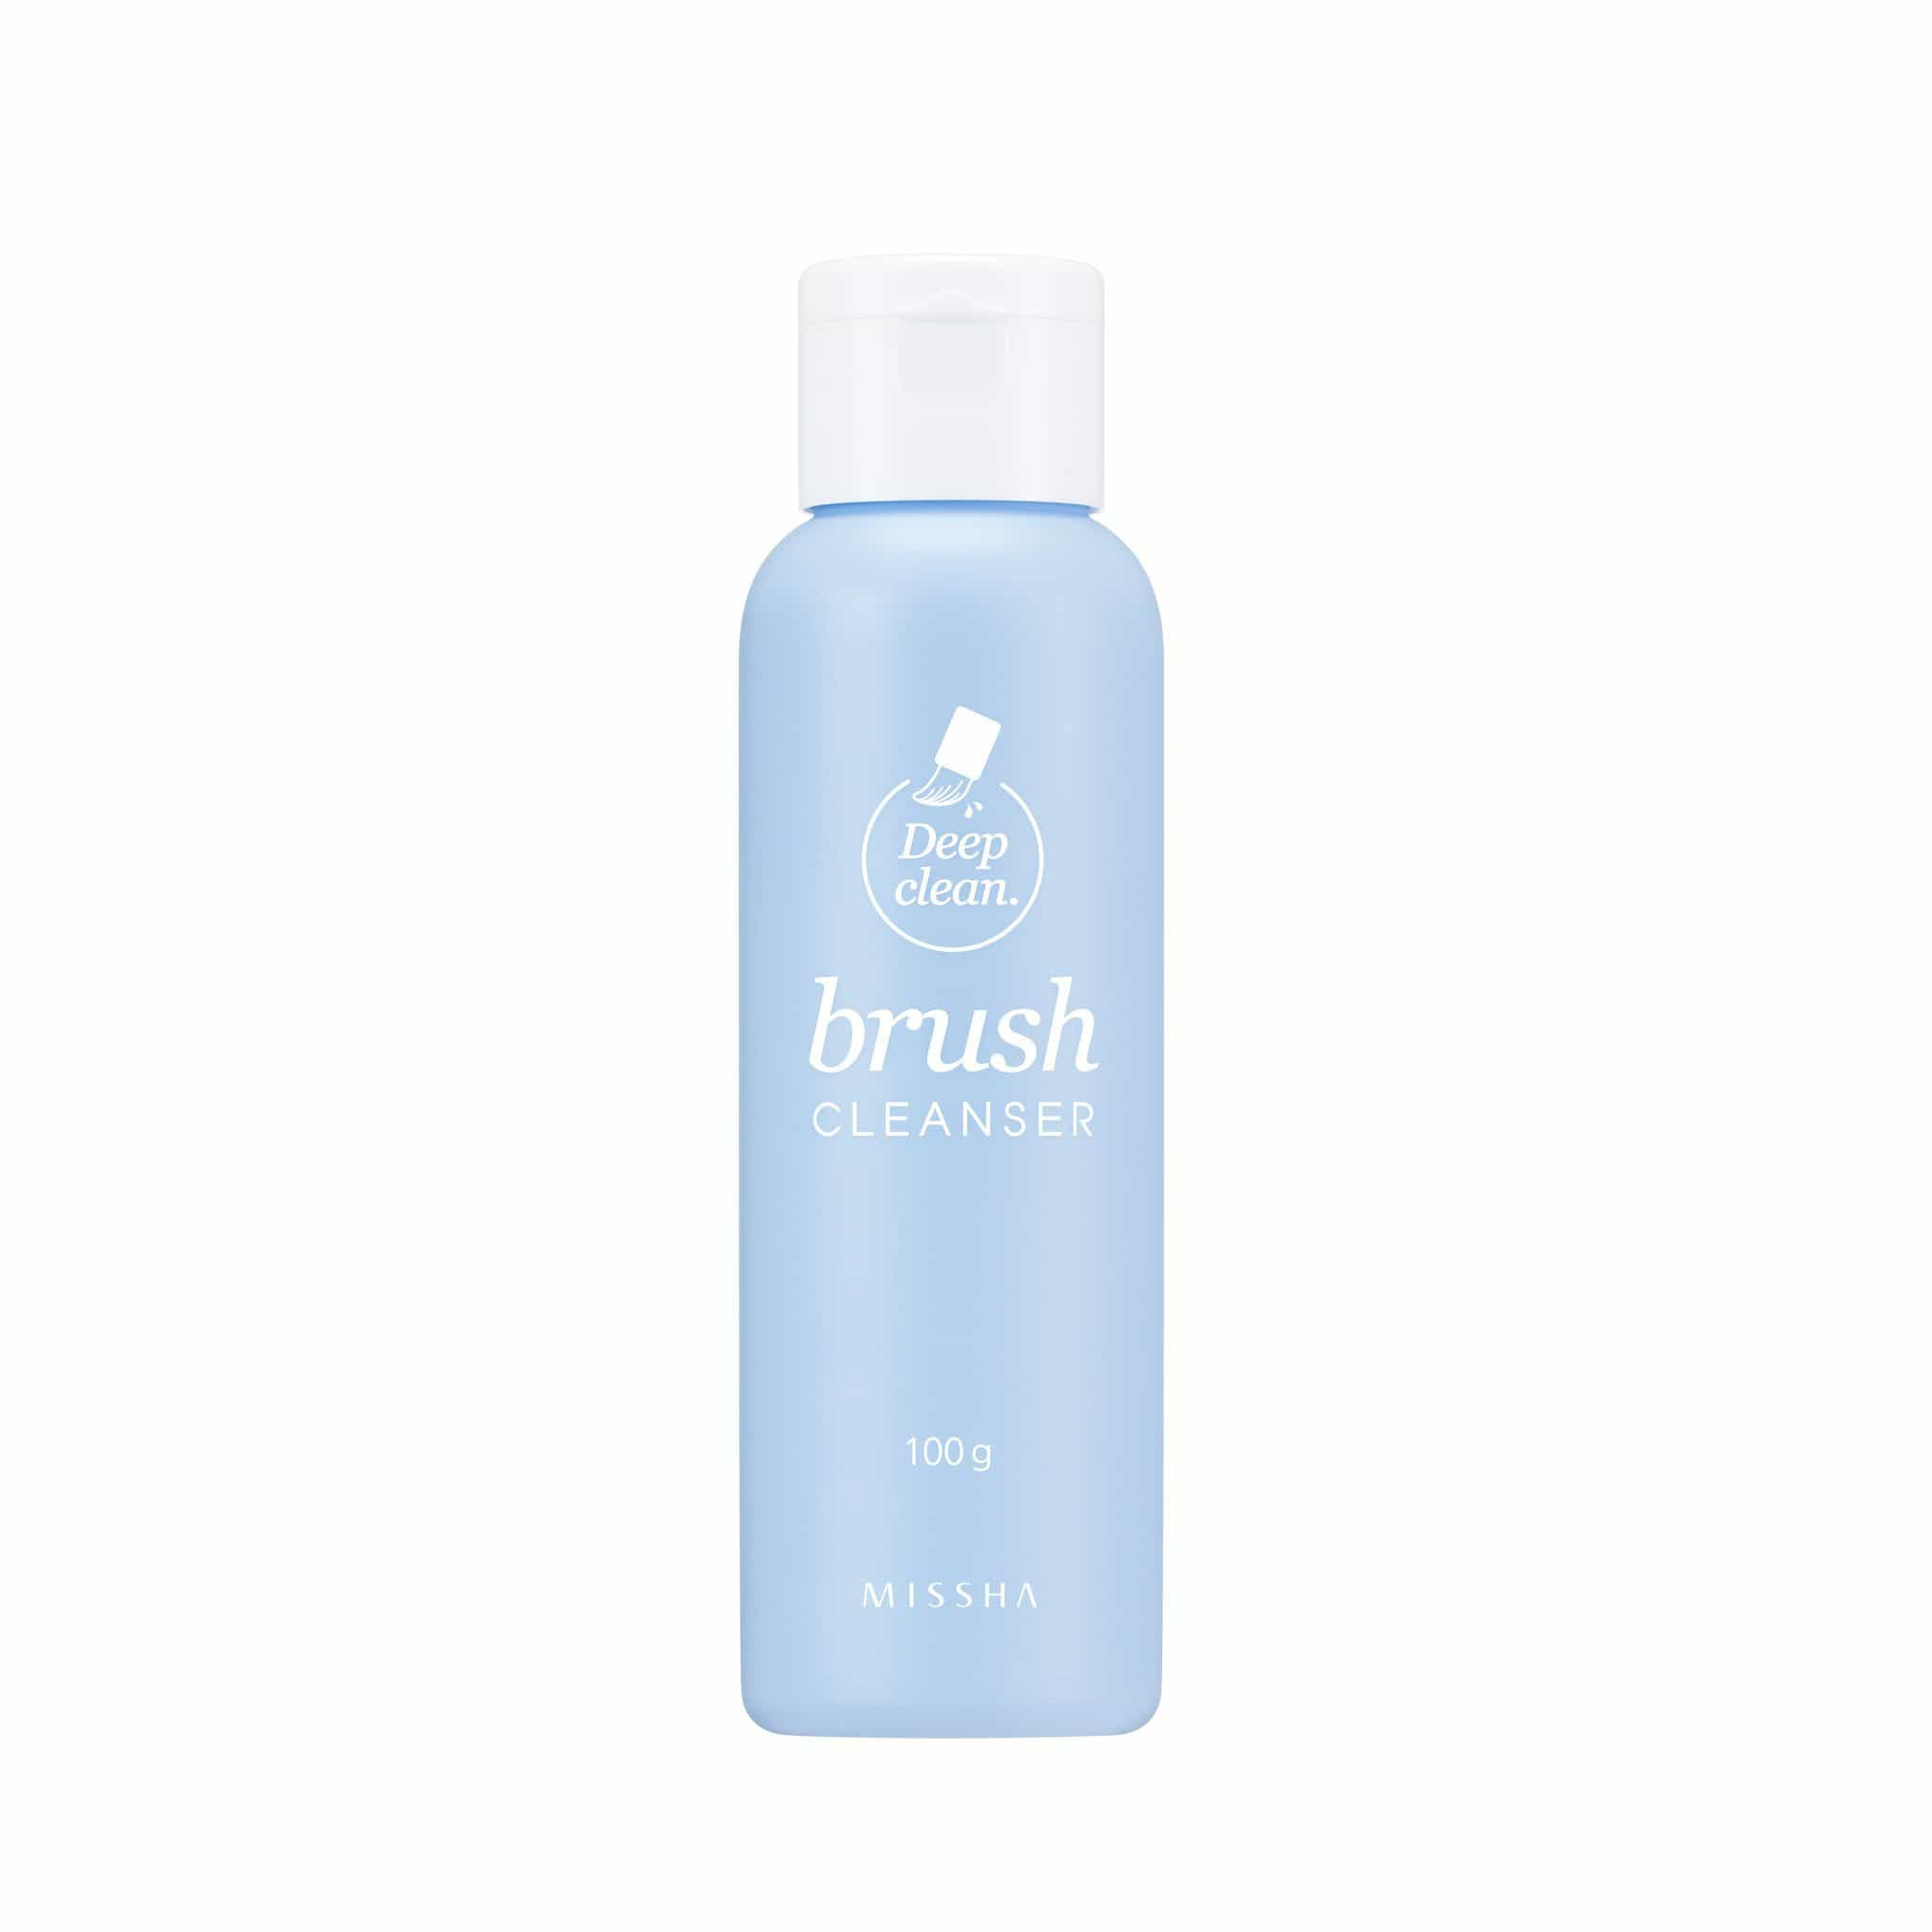 DEEP CLEAN BRUSH CLEANSER - MISSHA